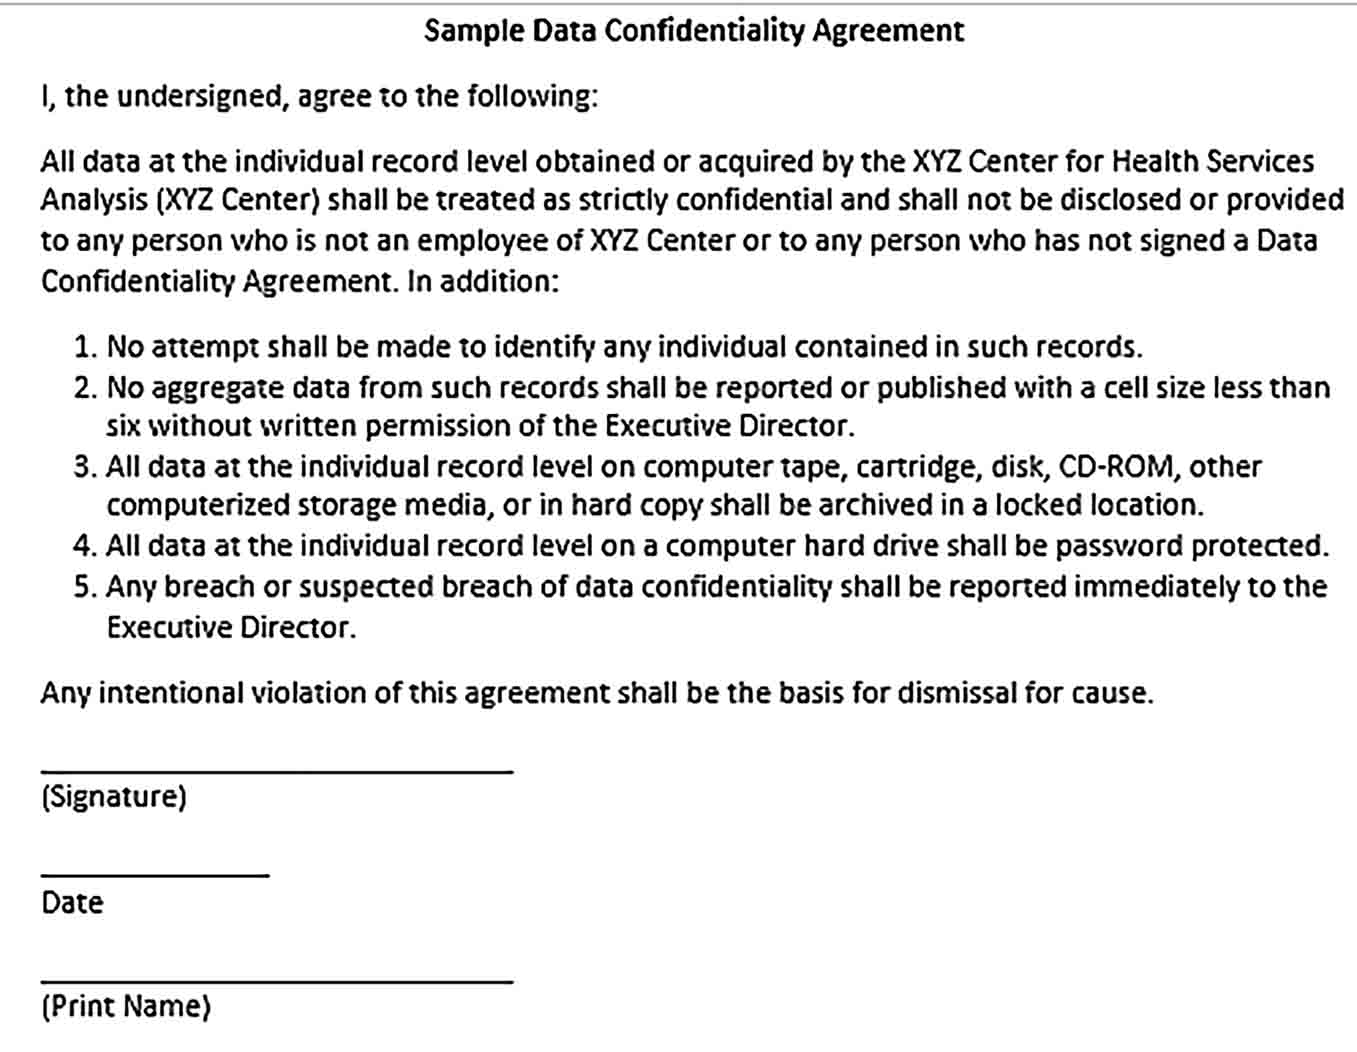 Sample Computer Data Confidentiality Agreement